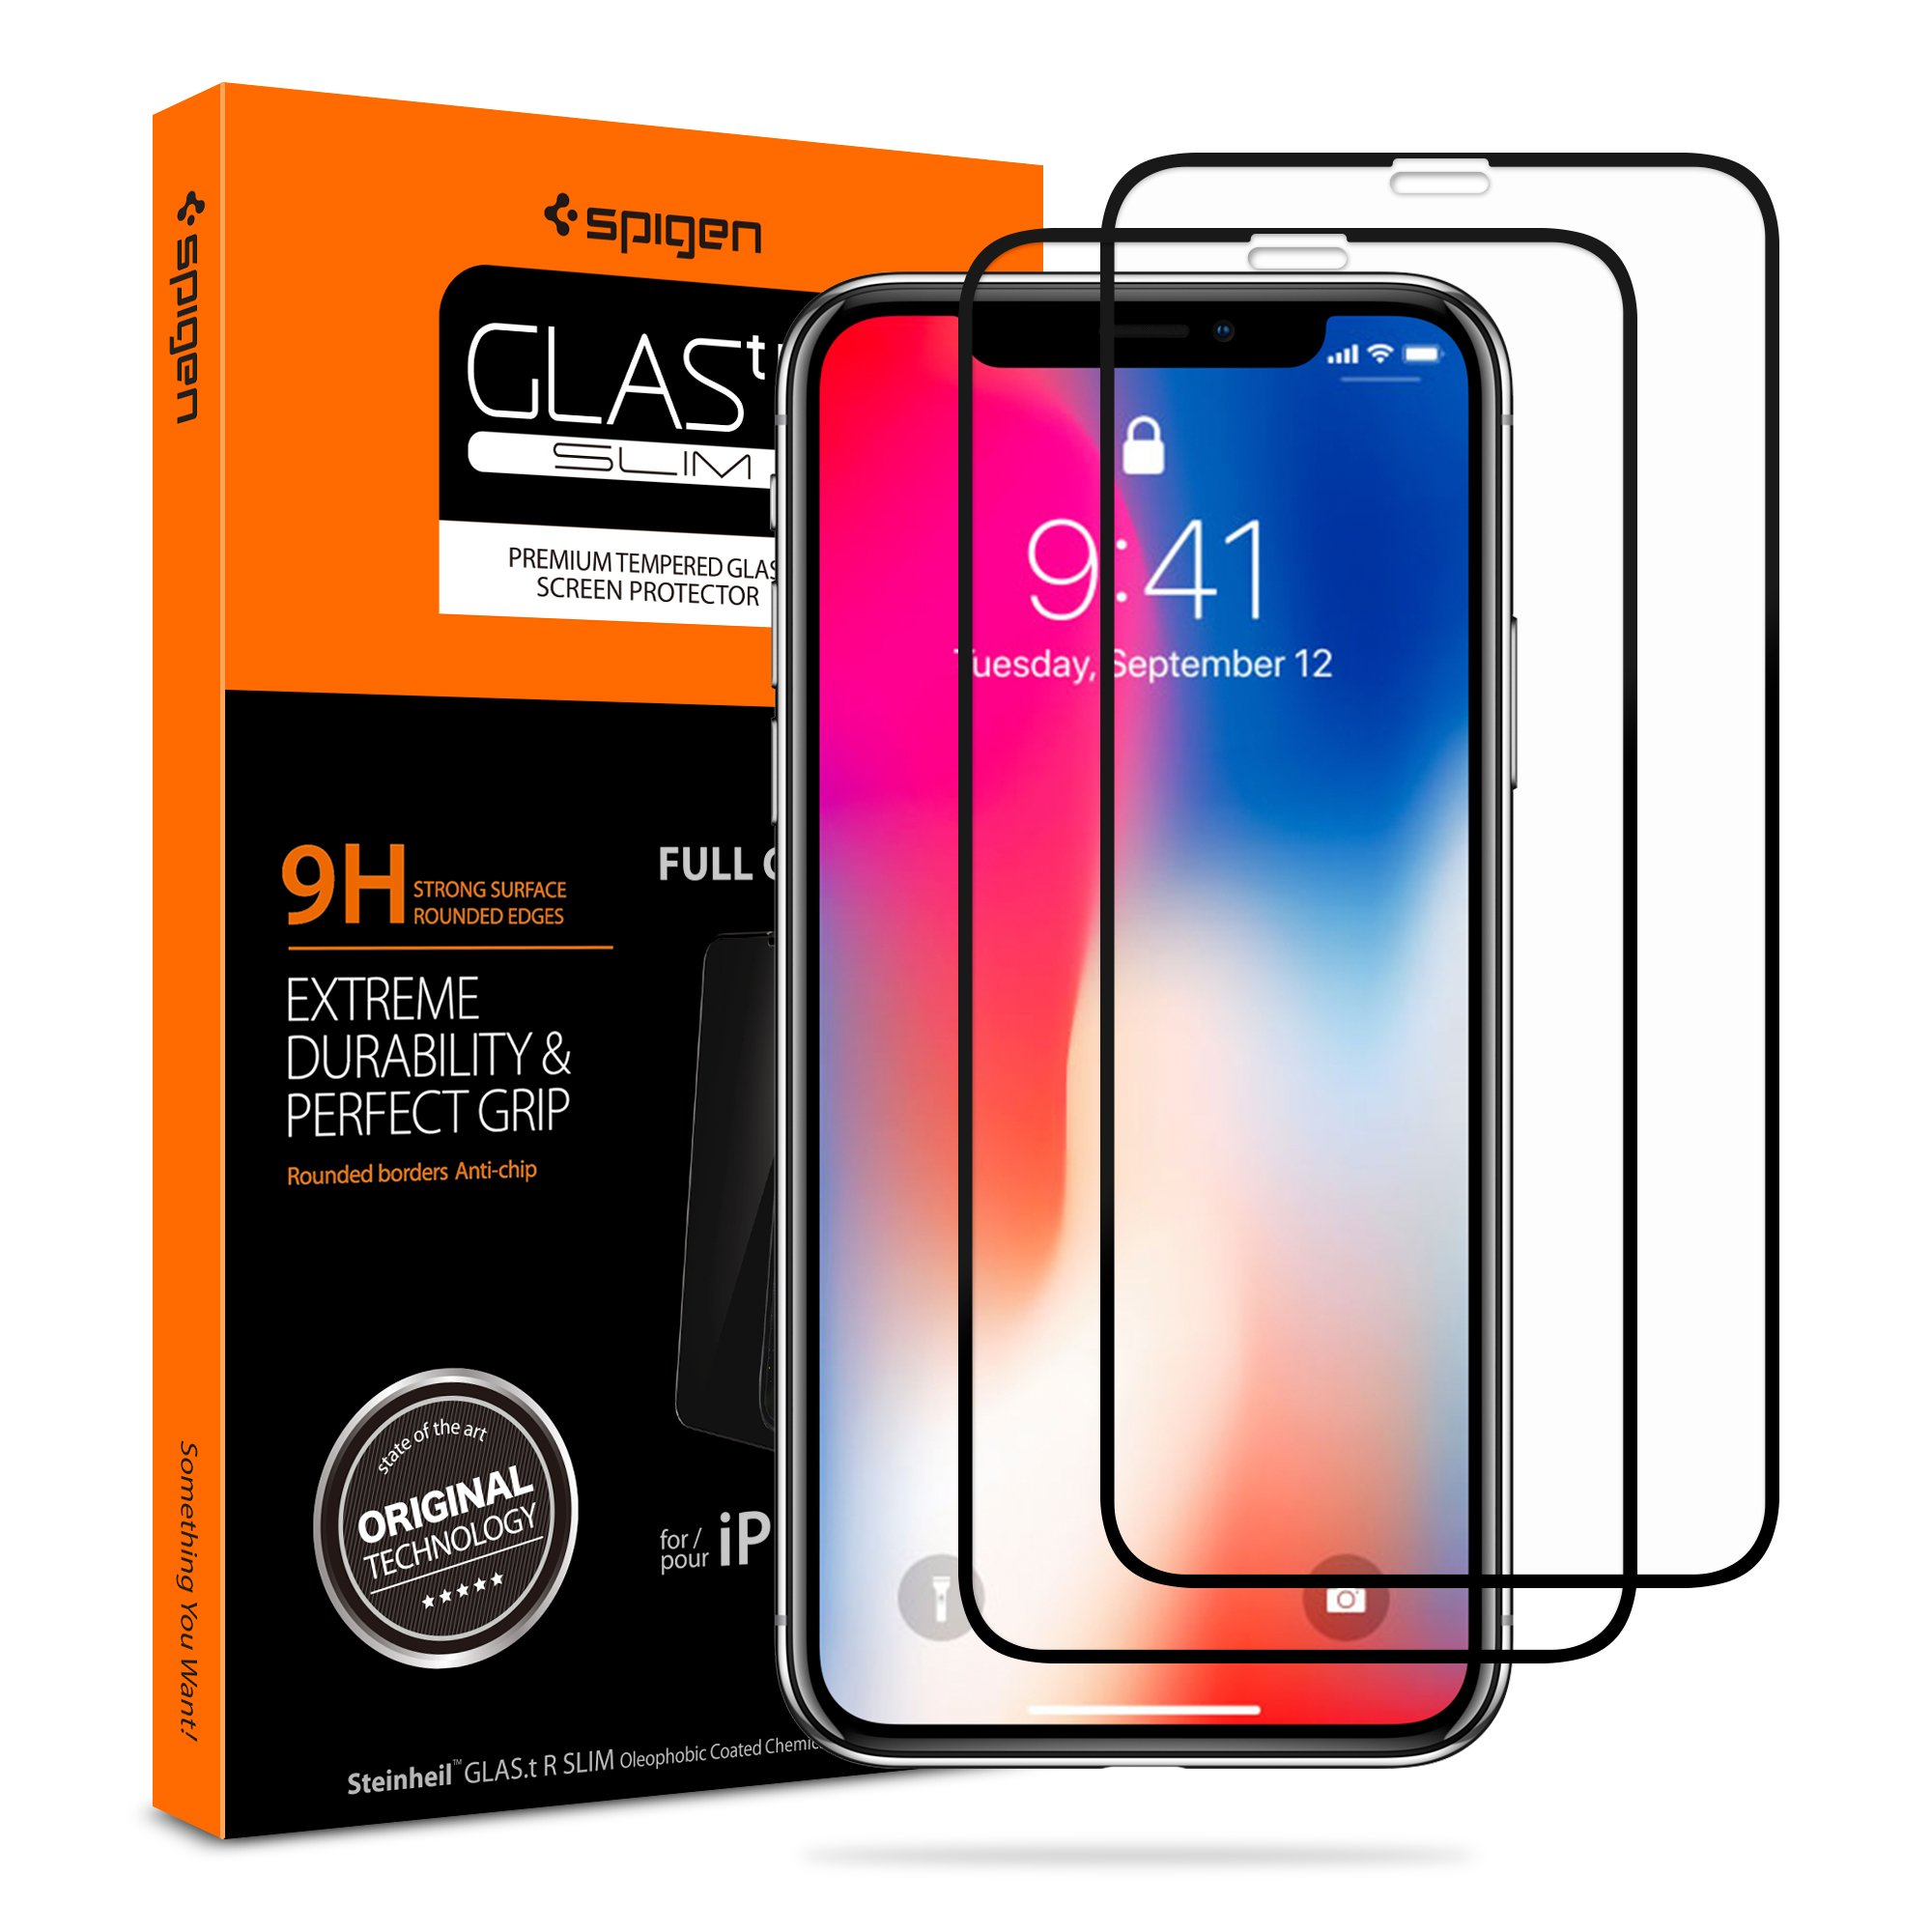 Spigen Tempered Glass Screen Protector Designed for iPhone Xs (2018) / iPhone X (2017) [2 Pack] - Maximum Protection by Spigen